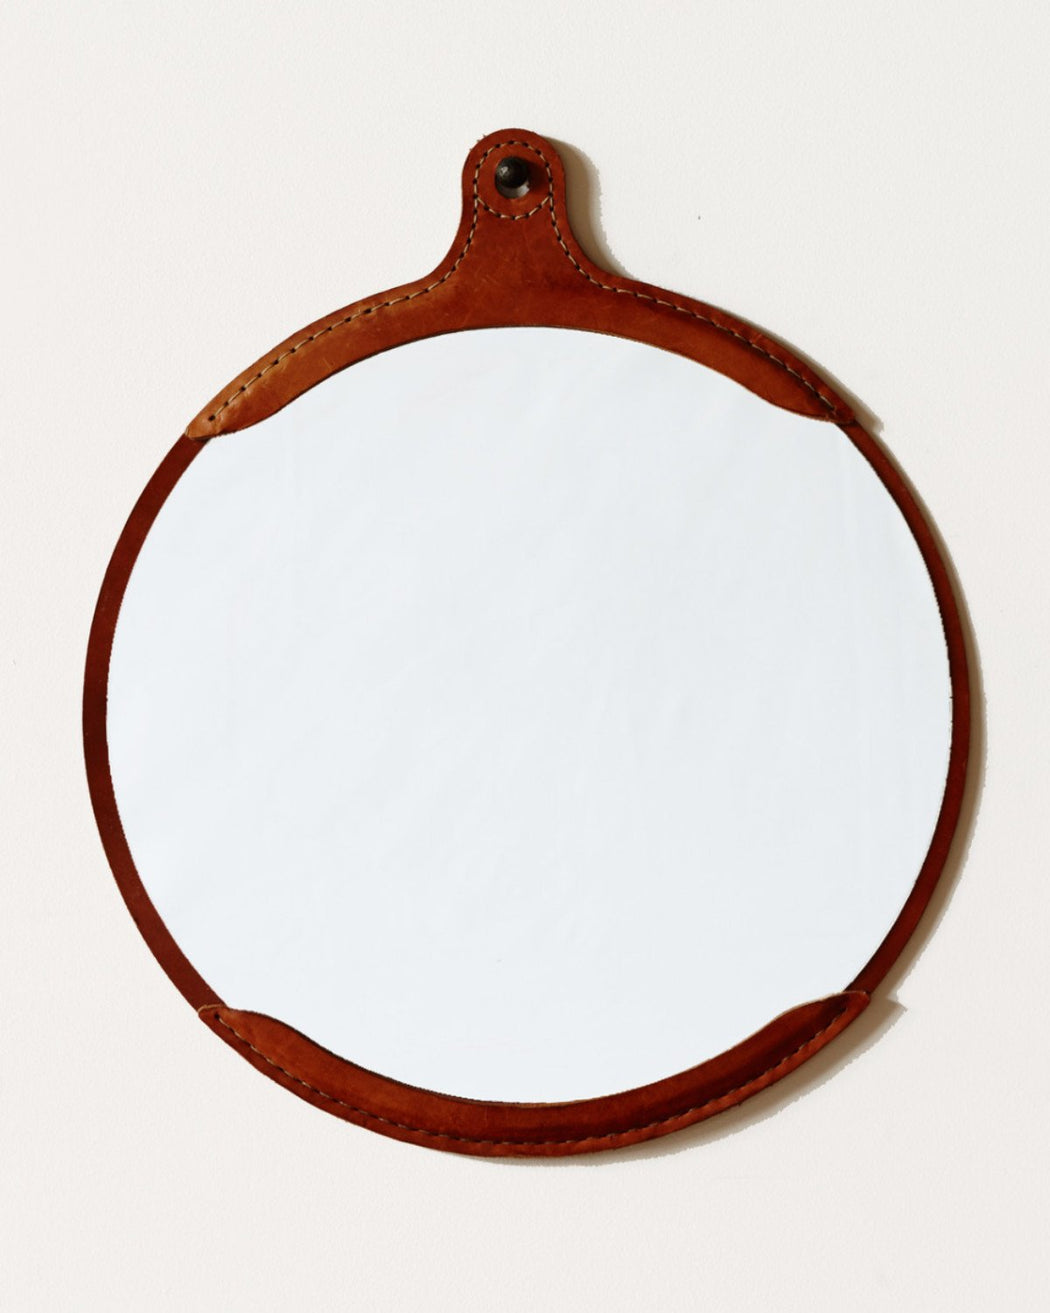 Lostine Fairmount round leather mirror